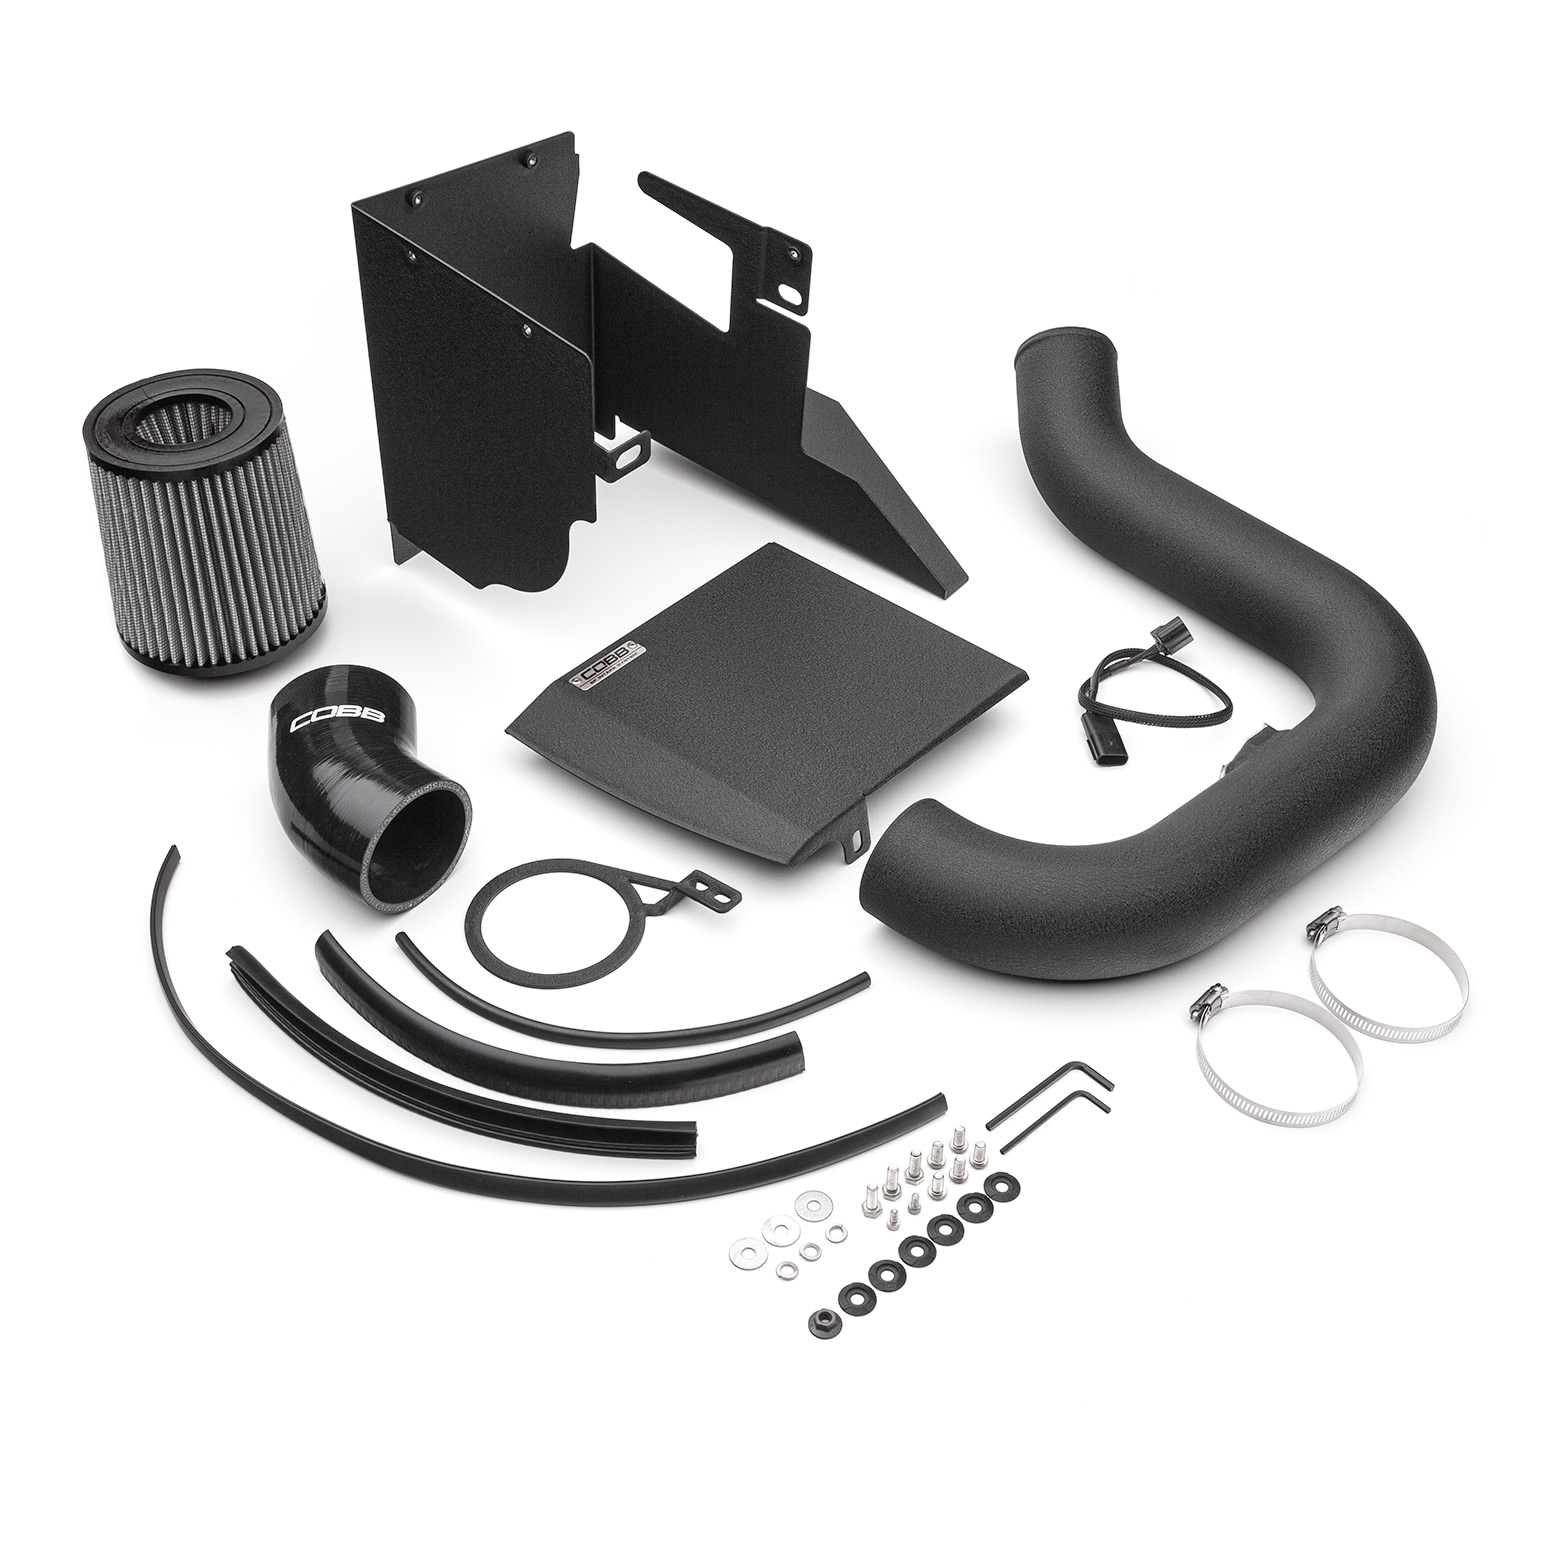 Subaru Stage 1 + Big SF Power Package WRX 2015-2019